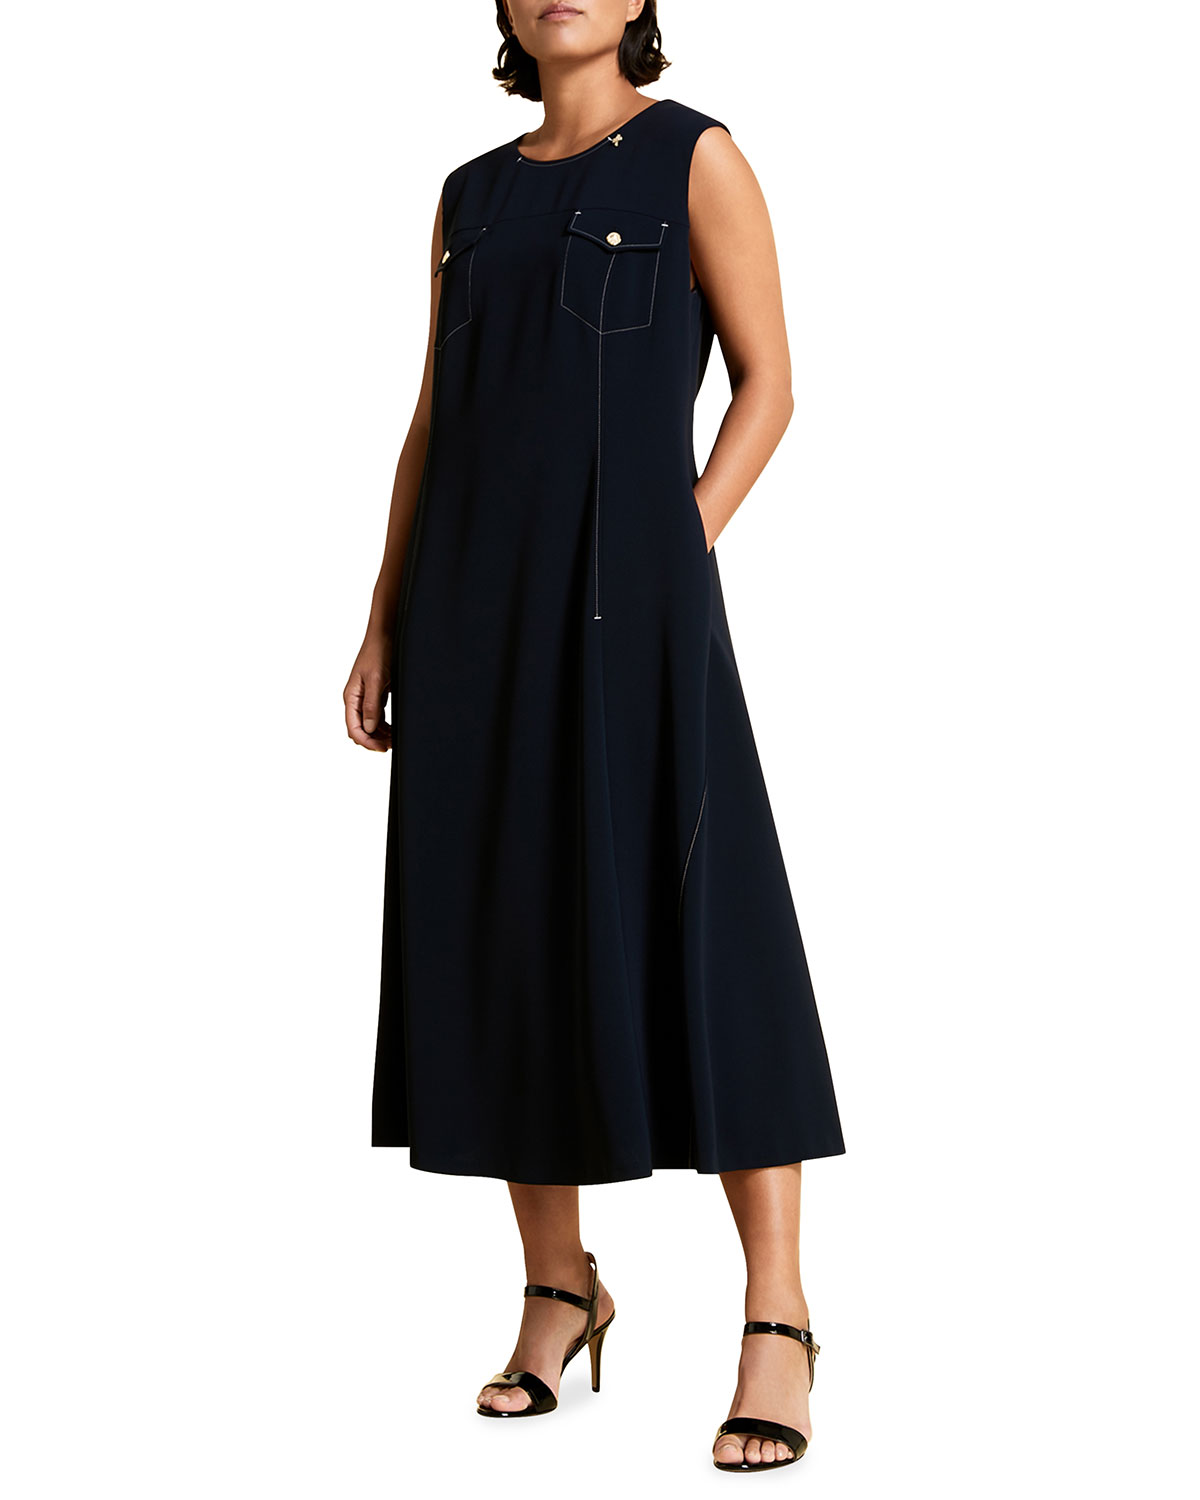 Marina Rinaldi PLUS SIZE DAVOS CREPE DRESS WITH ATTACHABLE SLEEVES